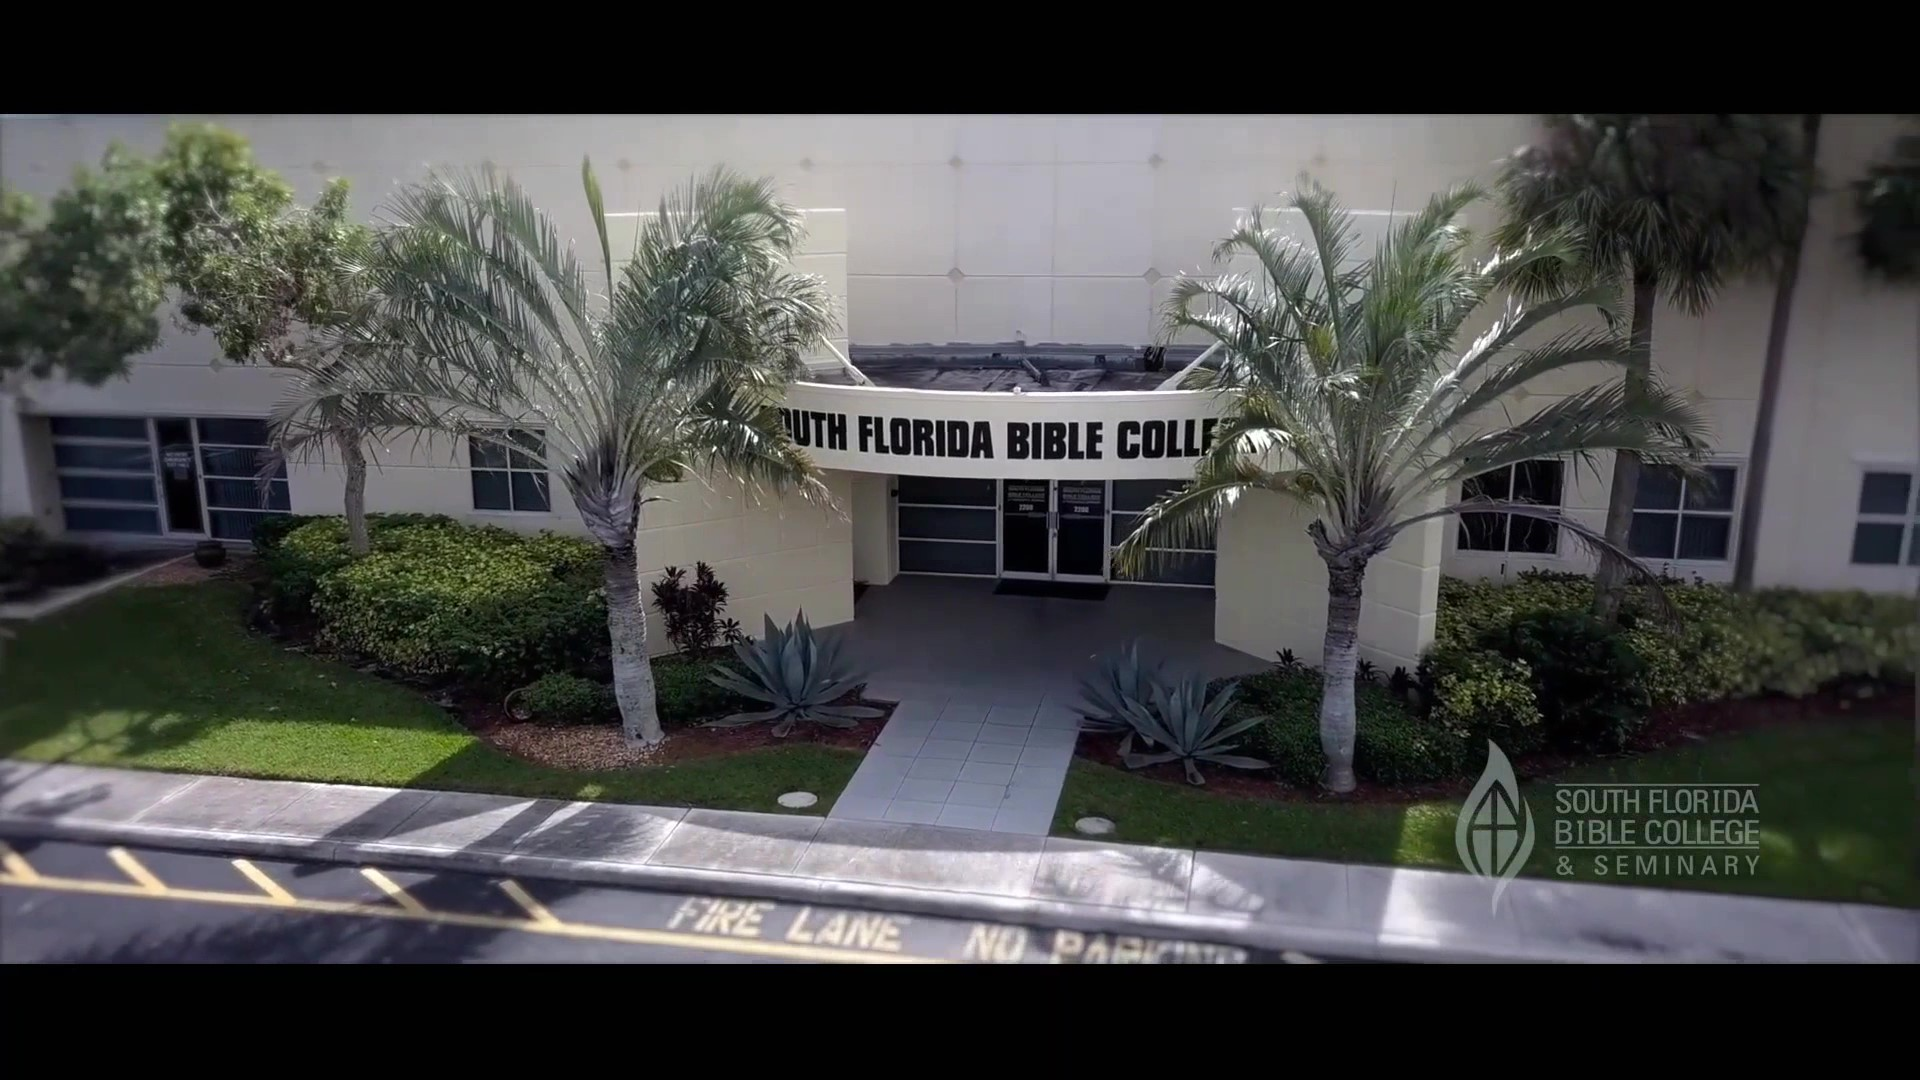 Colleges In South Florida >> South Florida Bible College And Seminary Linkedin